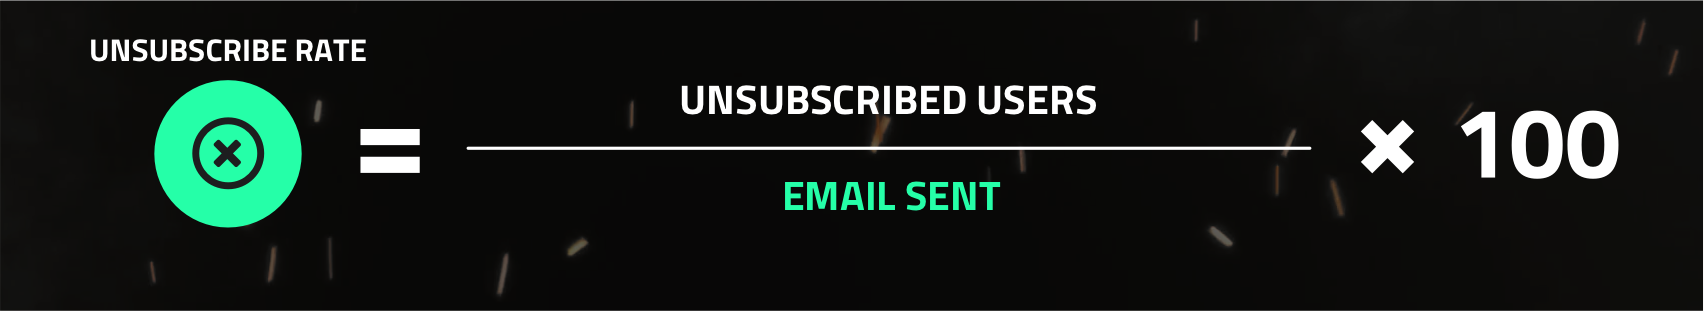 Unsubscribe Rate!